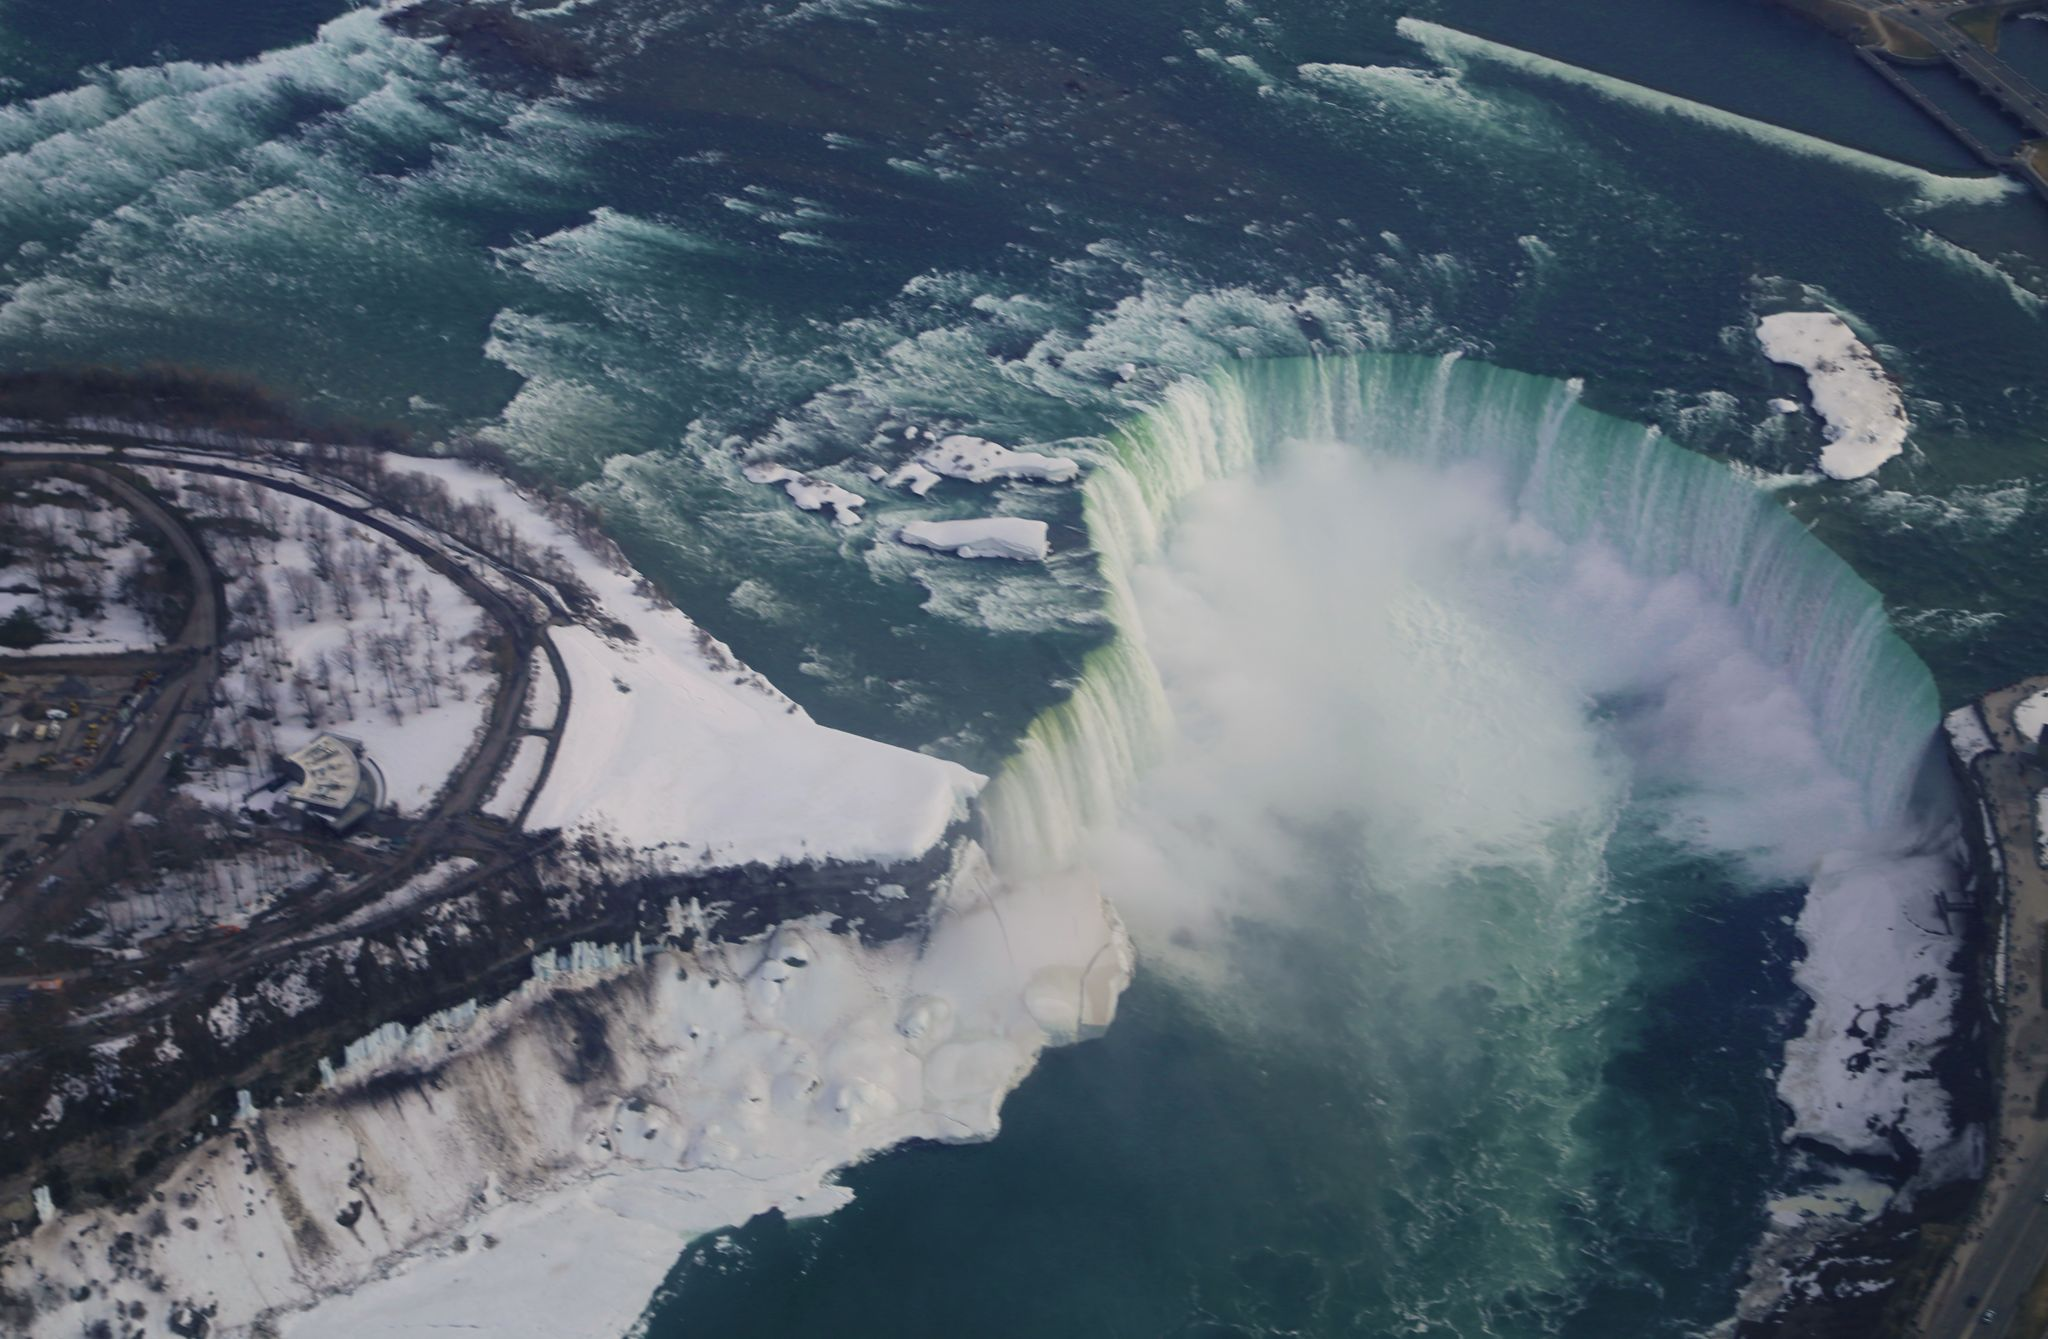 Niagara Falls from the sky, Canada